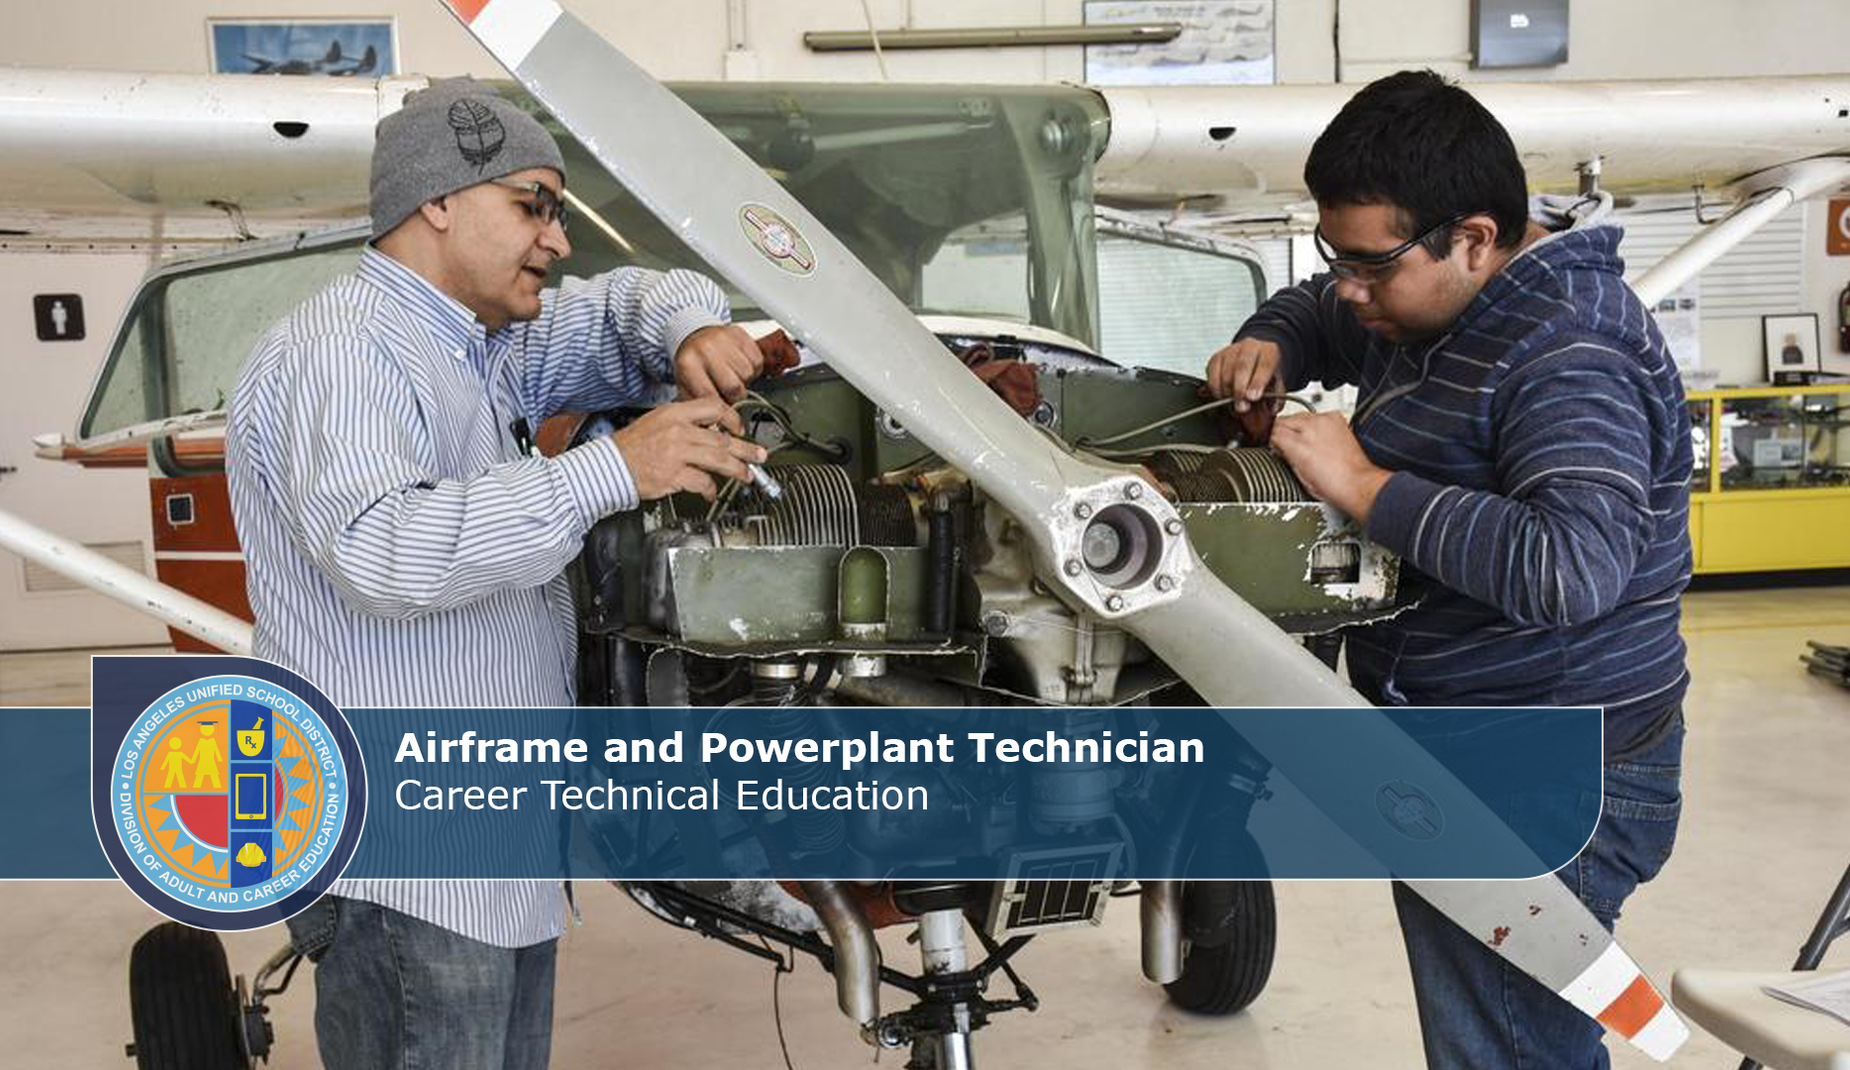 CTE Airframe and Powerplant